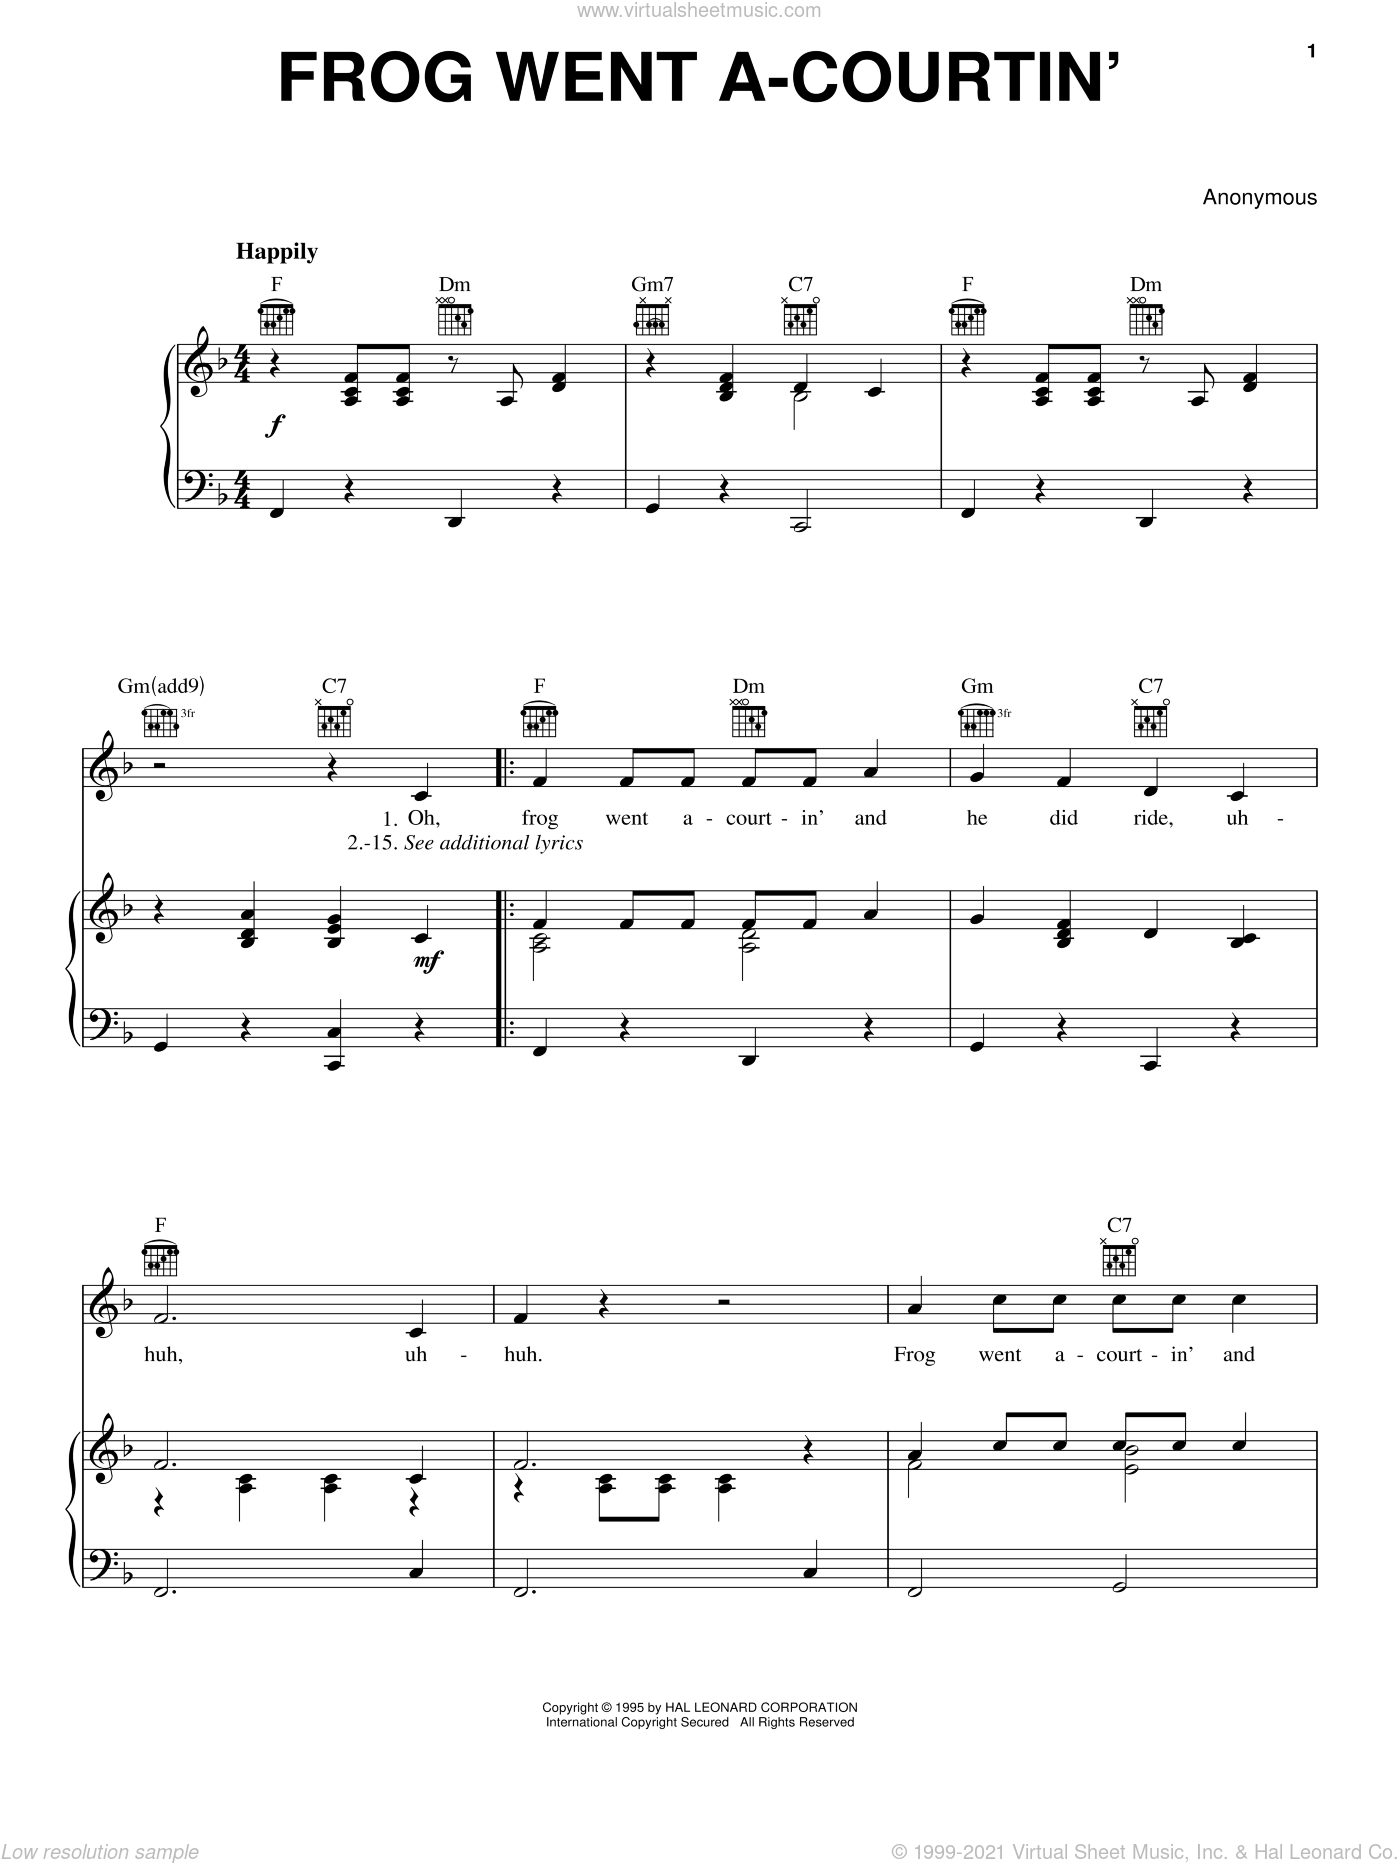 Frog Went A-Courtin' sheet music for voice, piano or guitar, intermediate voice, piano or guitar. Score Image Preview.